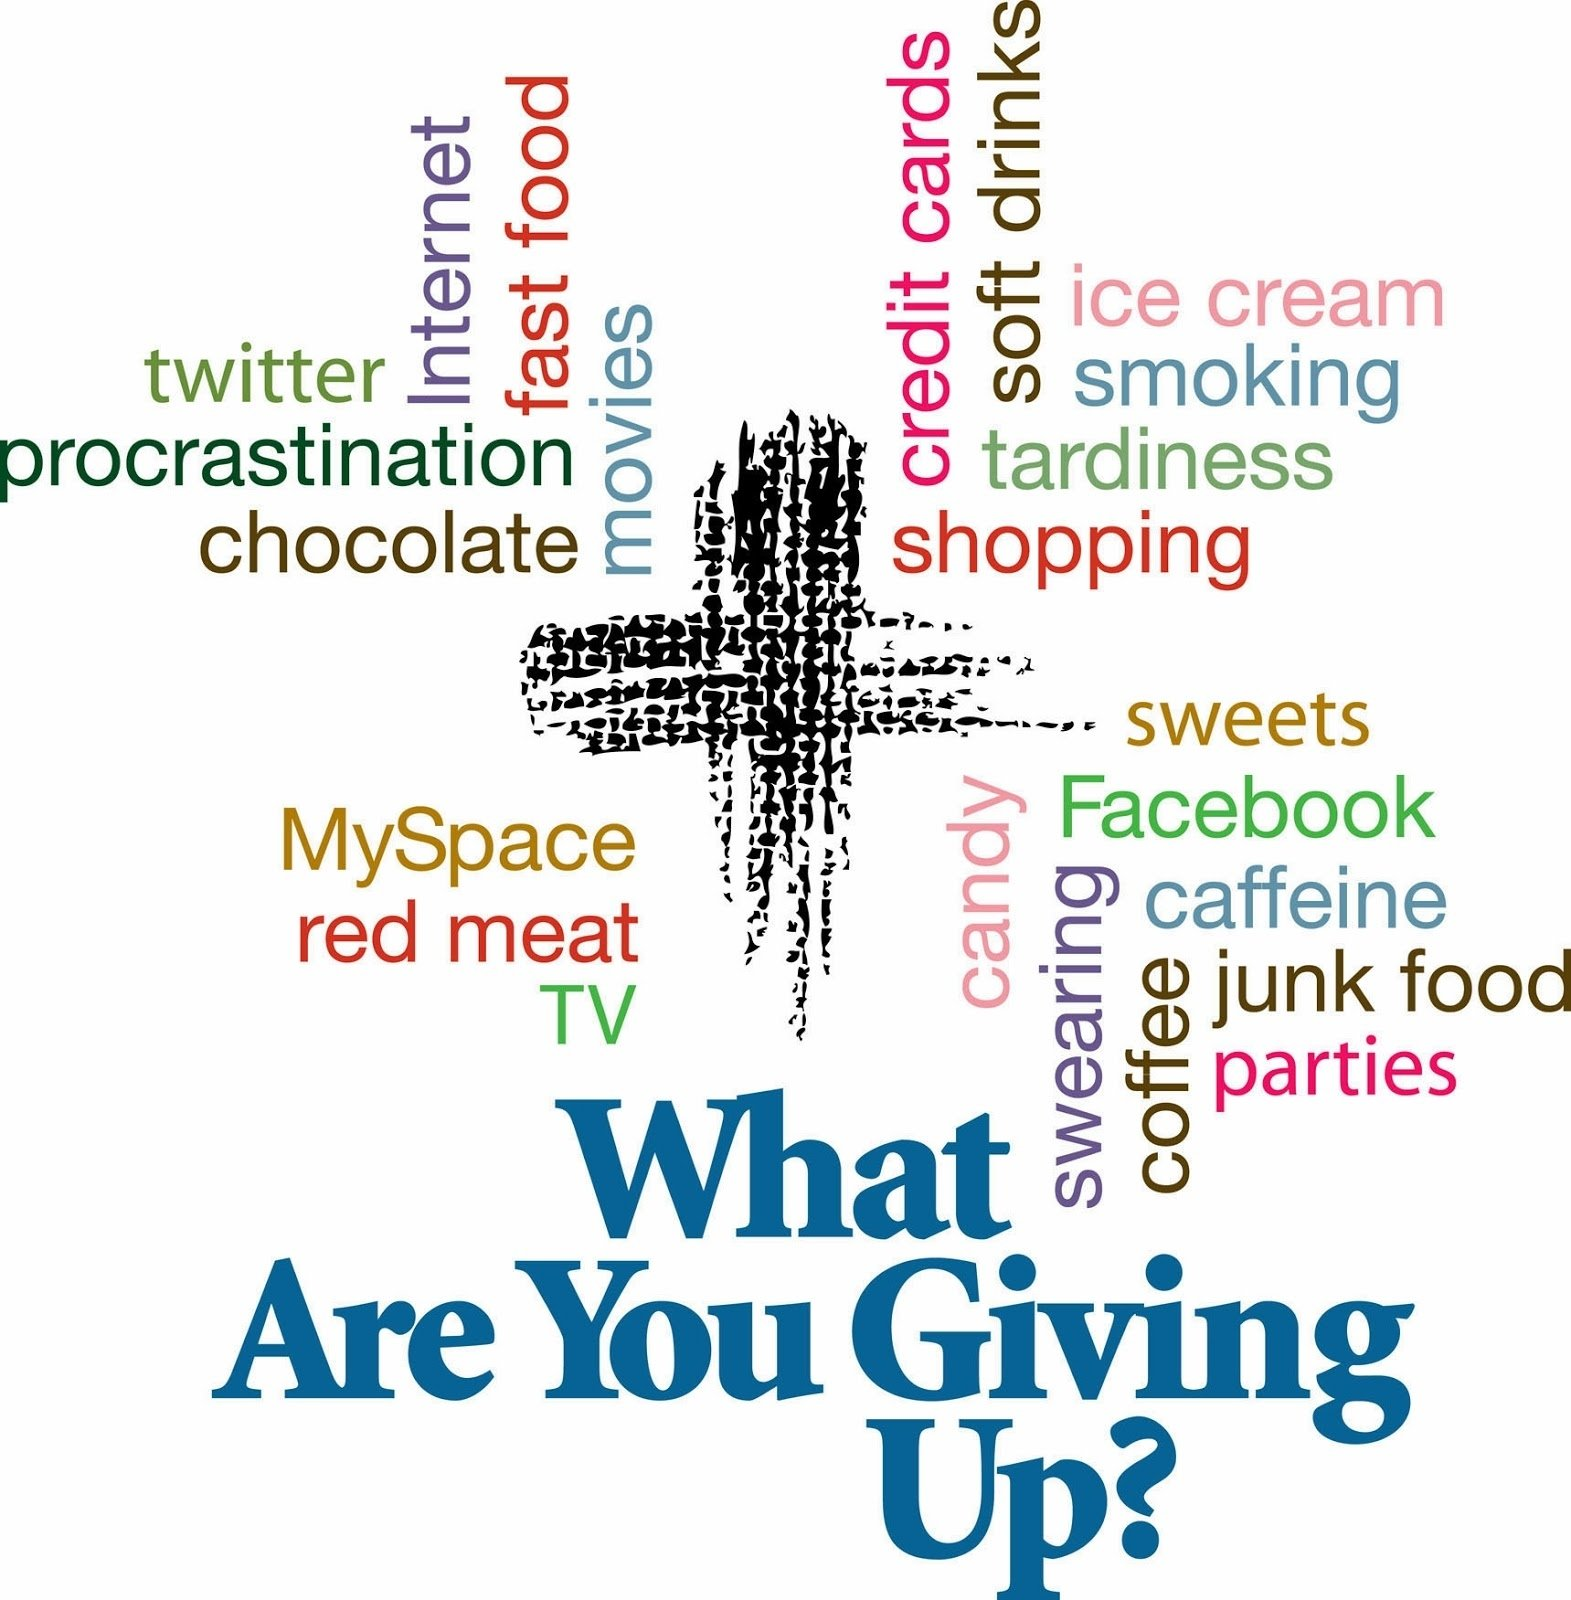 10 Fashionable What To Give Up For Lent Ideas the diary of a sower giving up or adding something to lent 2 2021